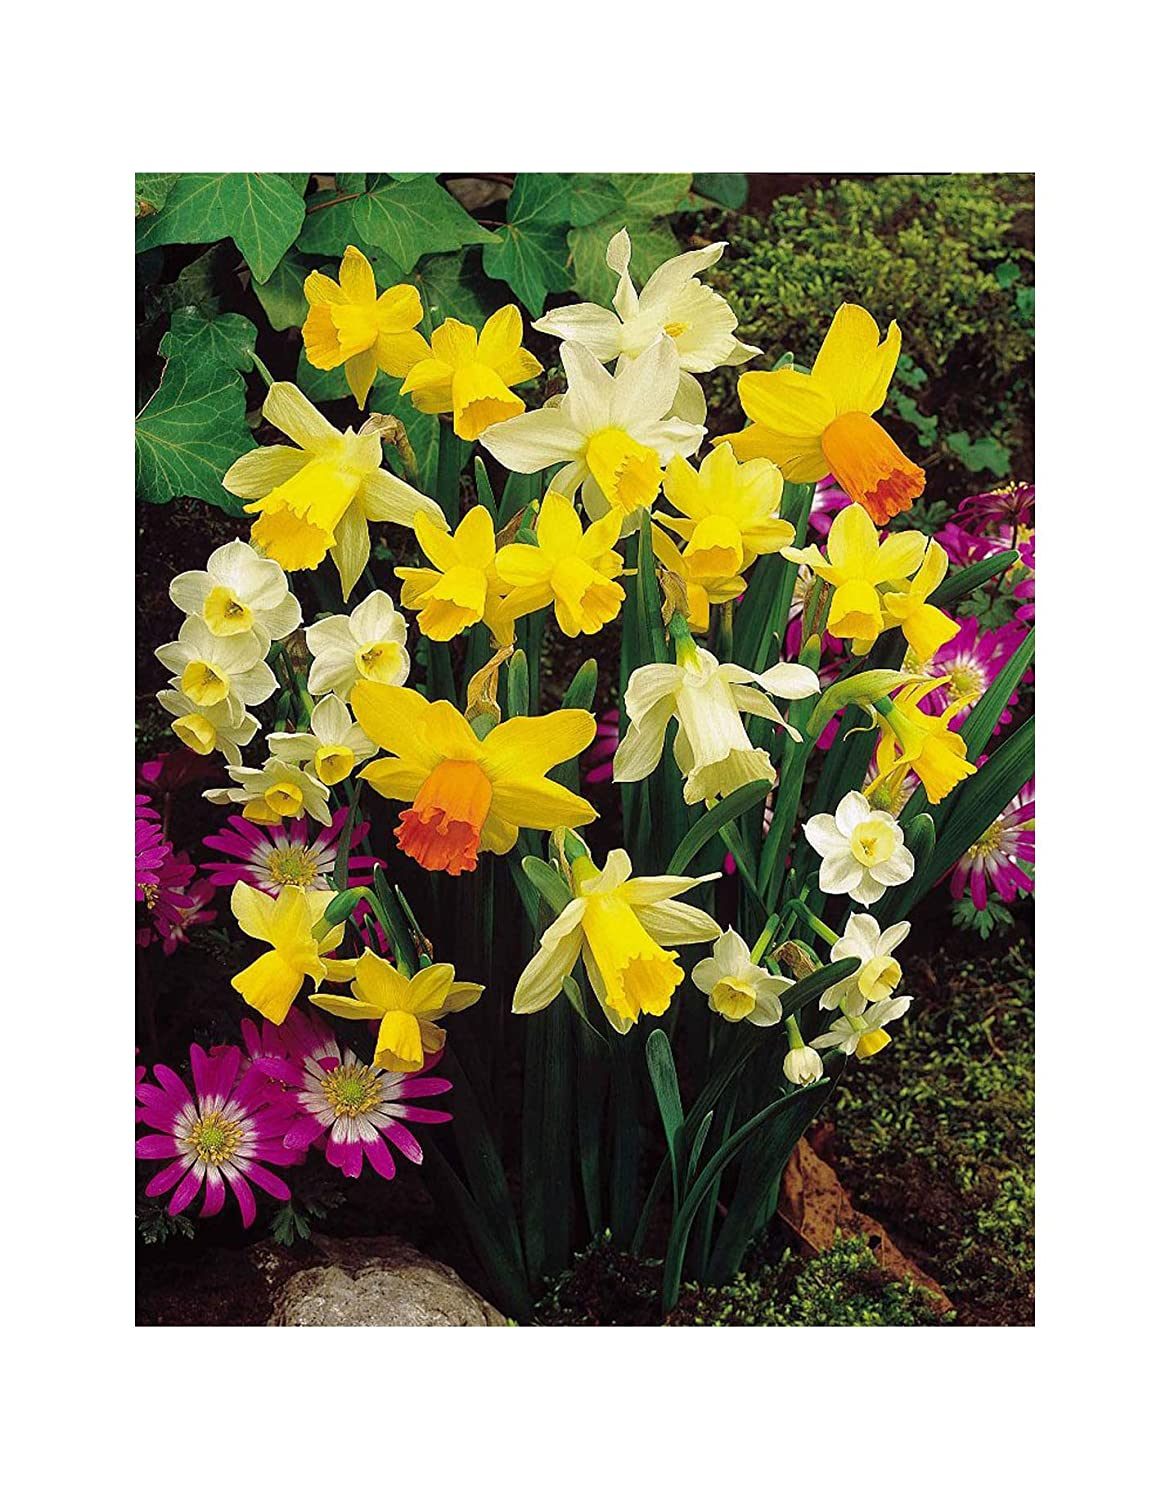 GARTHWAITE NURSERIES® : - 50 Mixed Miniature Daffodil/Narcissus Bulbs Dwarf Special Mixture Perennial